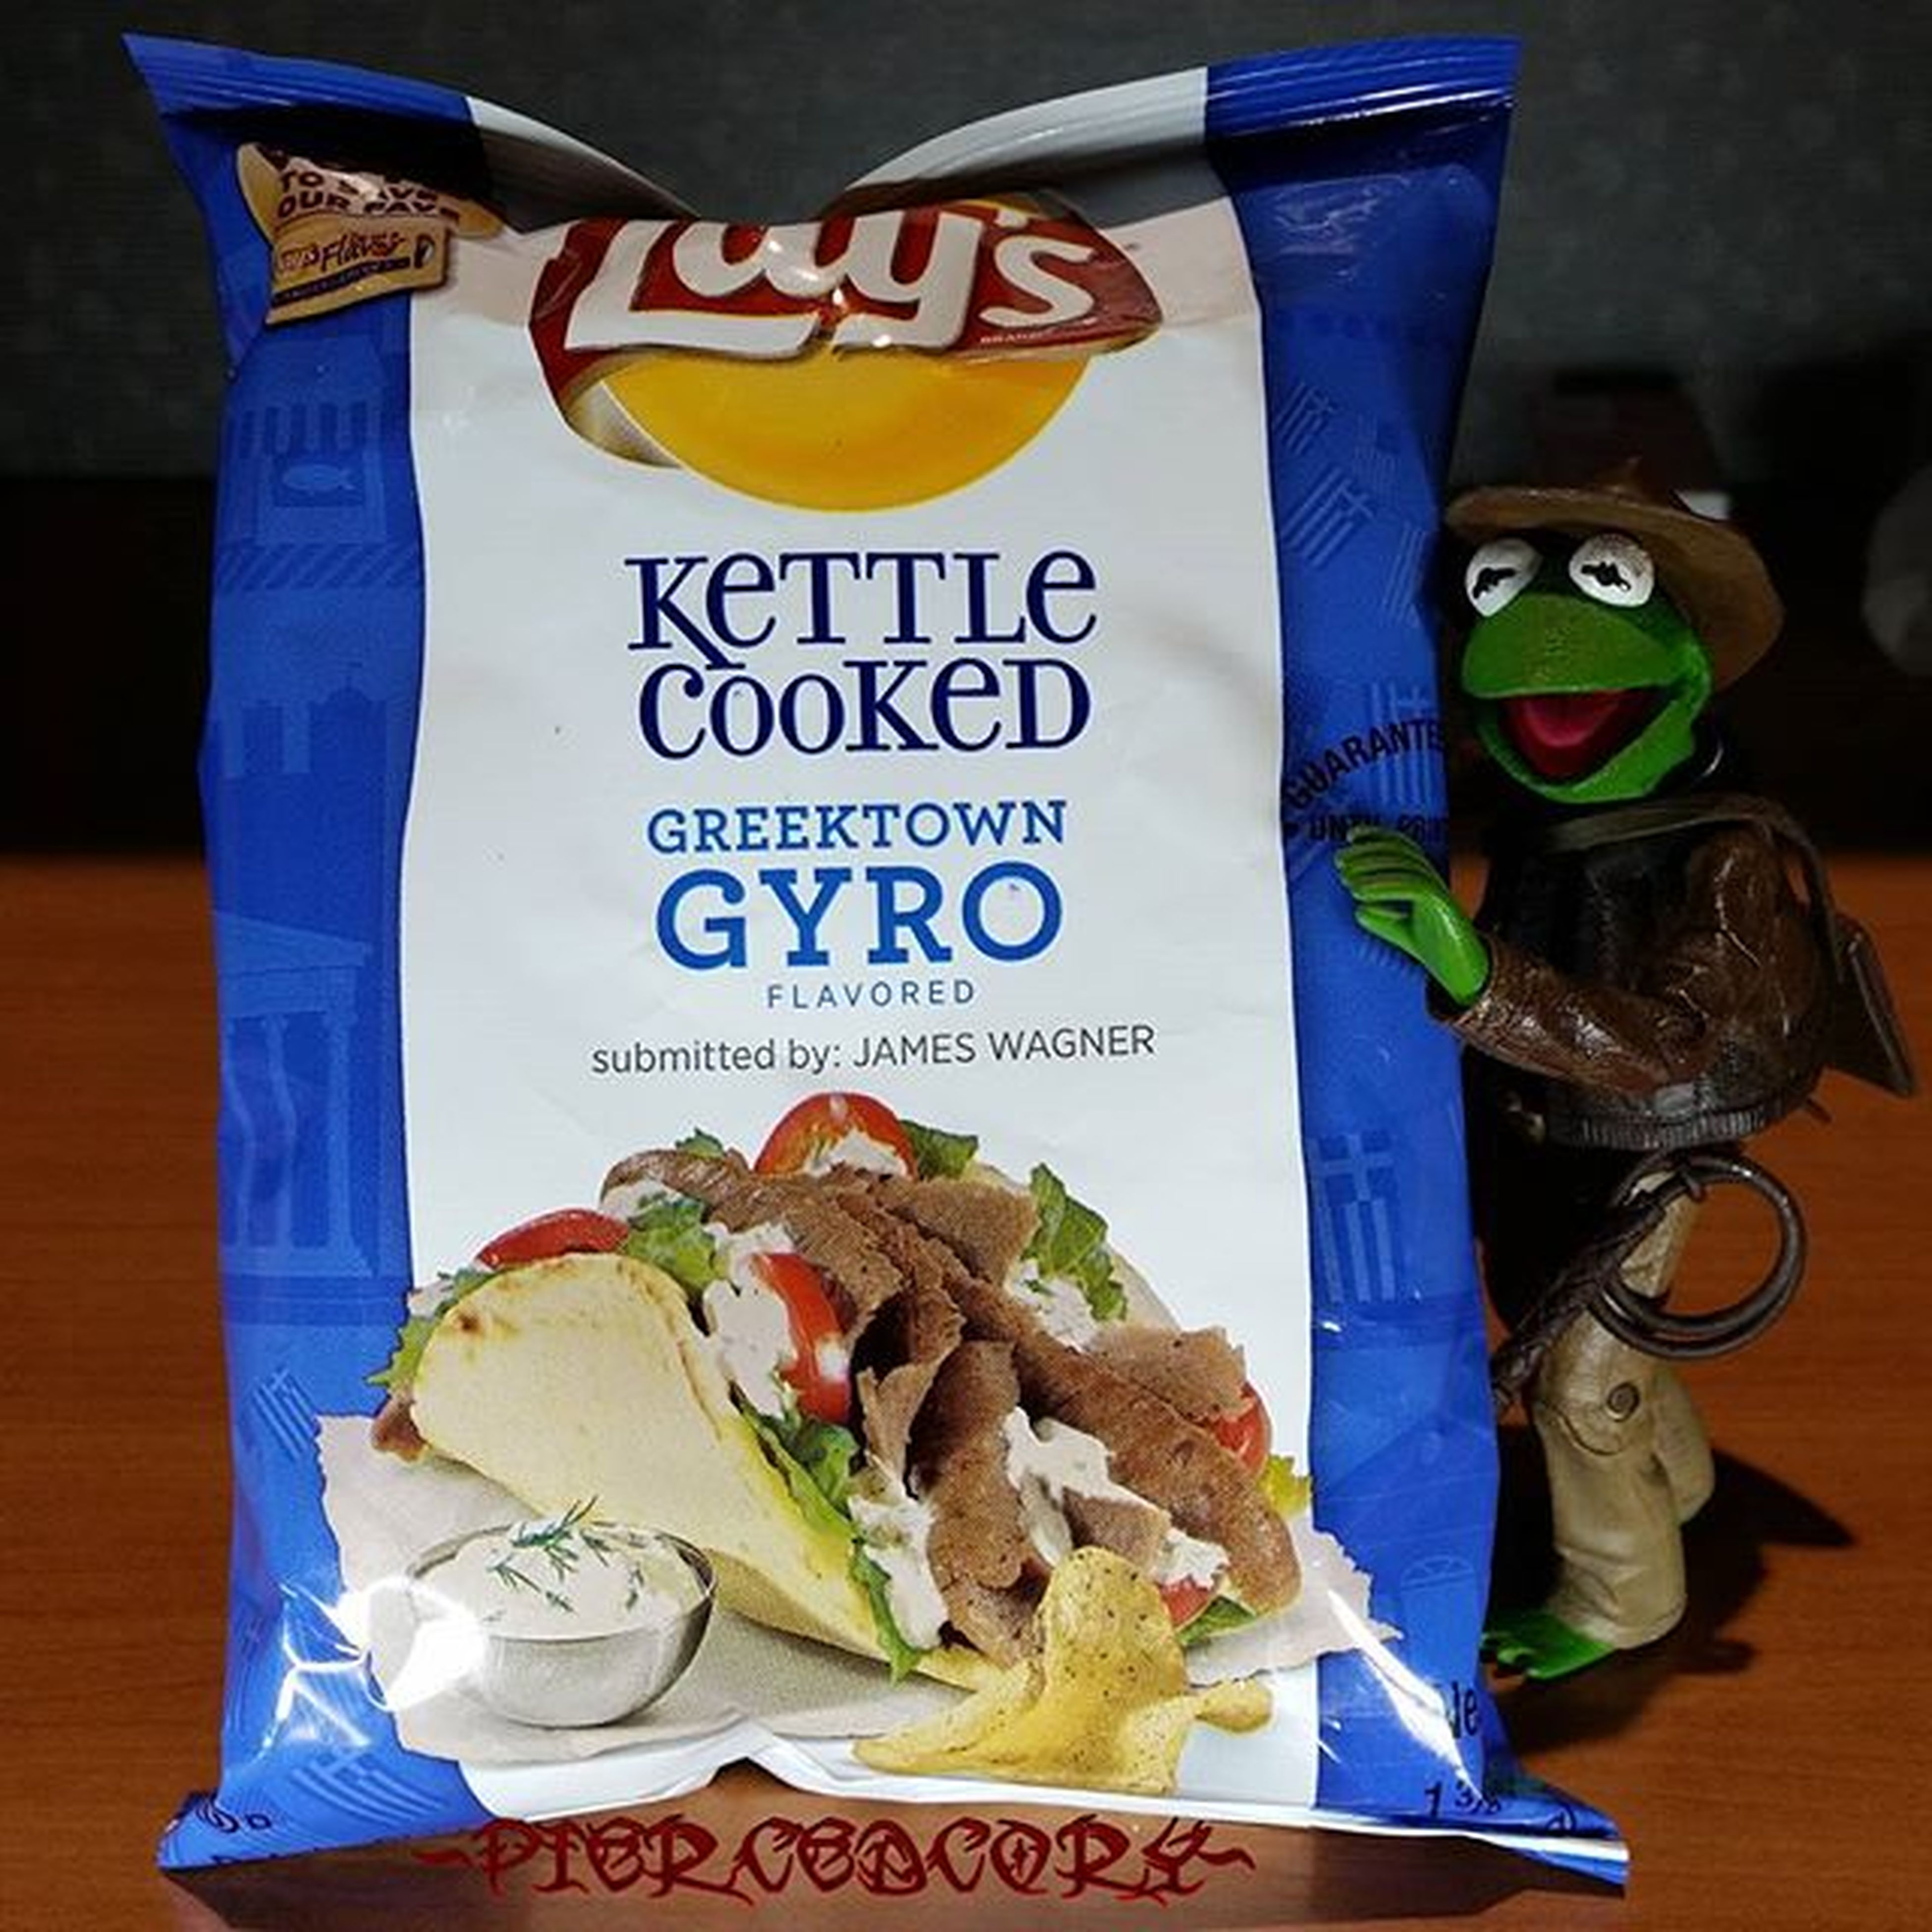 Well this could be an adventure with @lays Kettlecookedgreektowngyro Lays DoUsAFlavor Votegyro